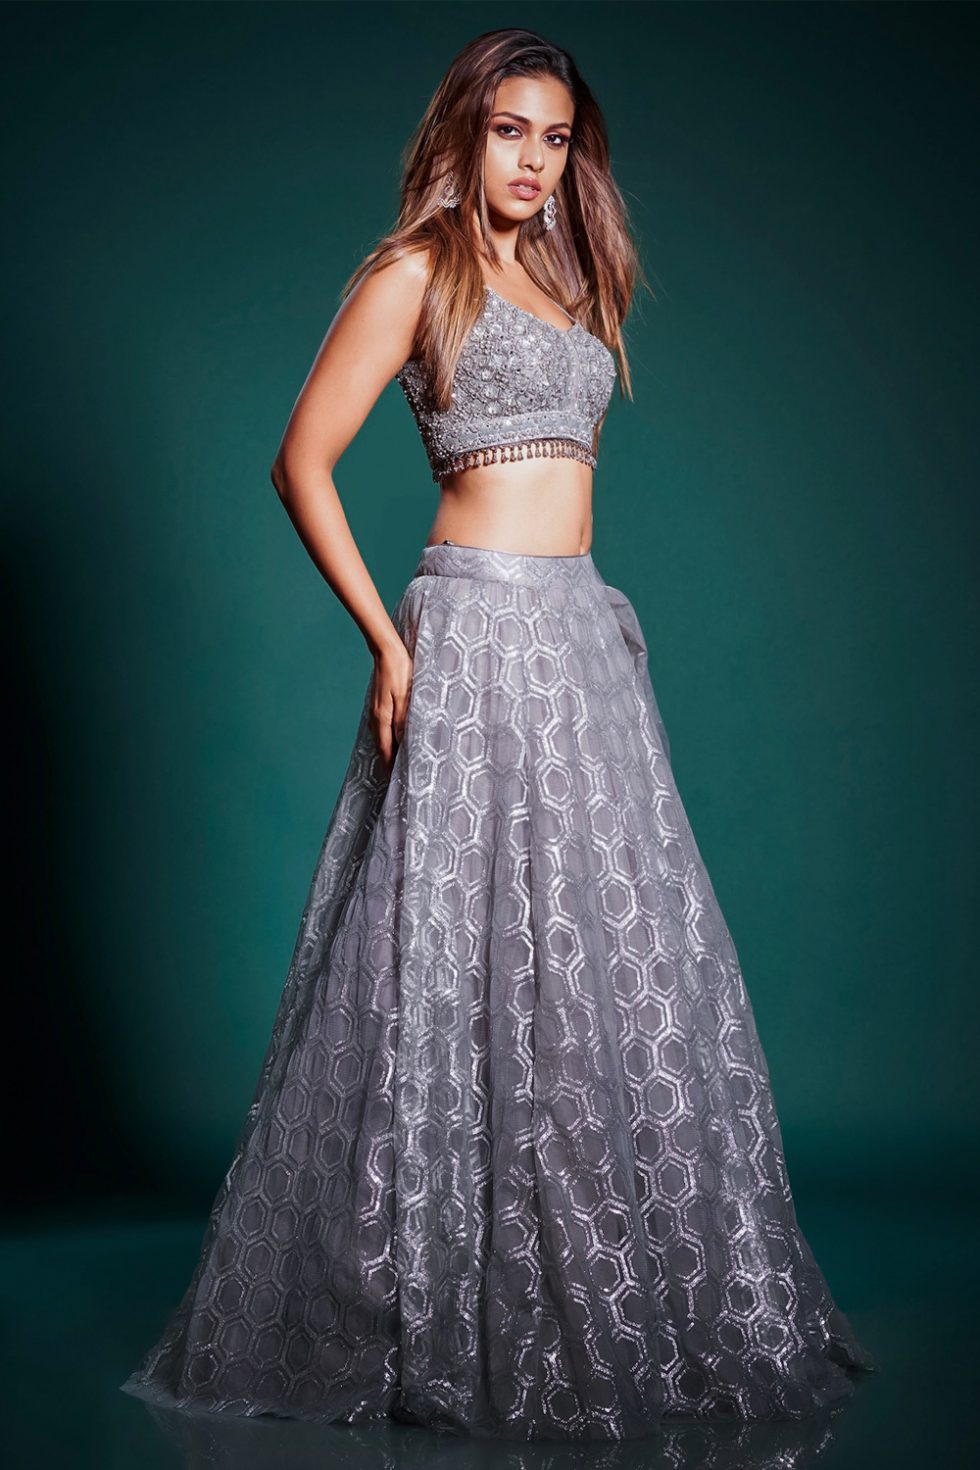 Silver grey lehenga set with a hand embroidered blouse and patterned skirt paired with a matching dupatta and tassels.